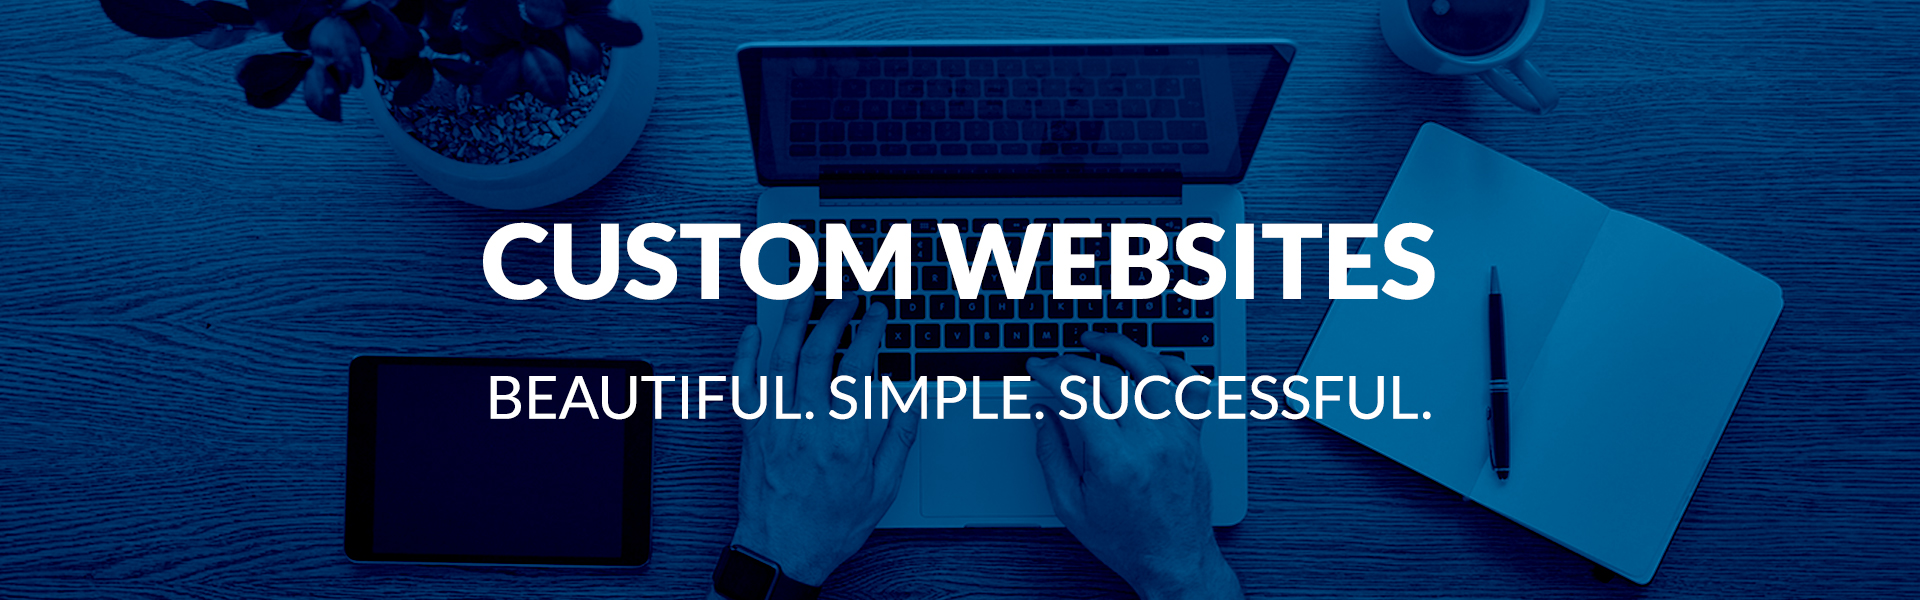 Custom Website Services